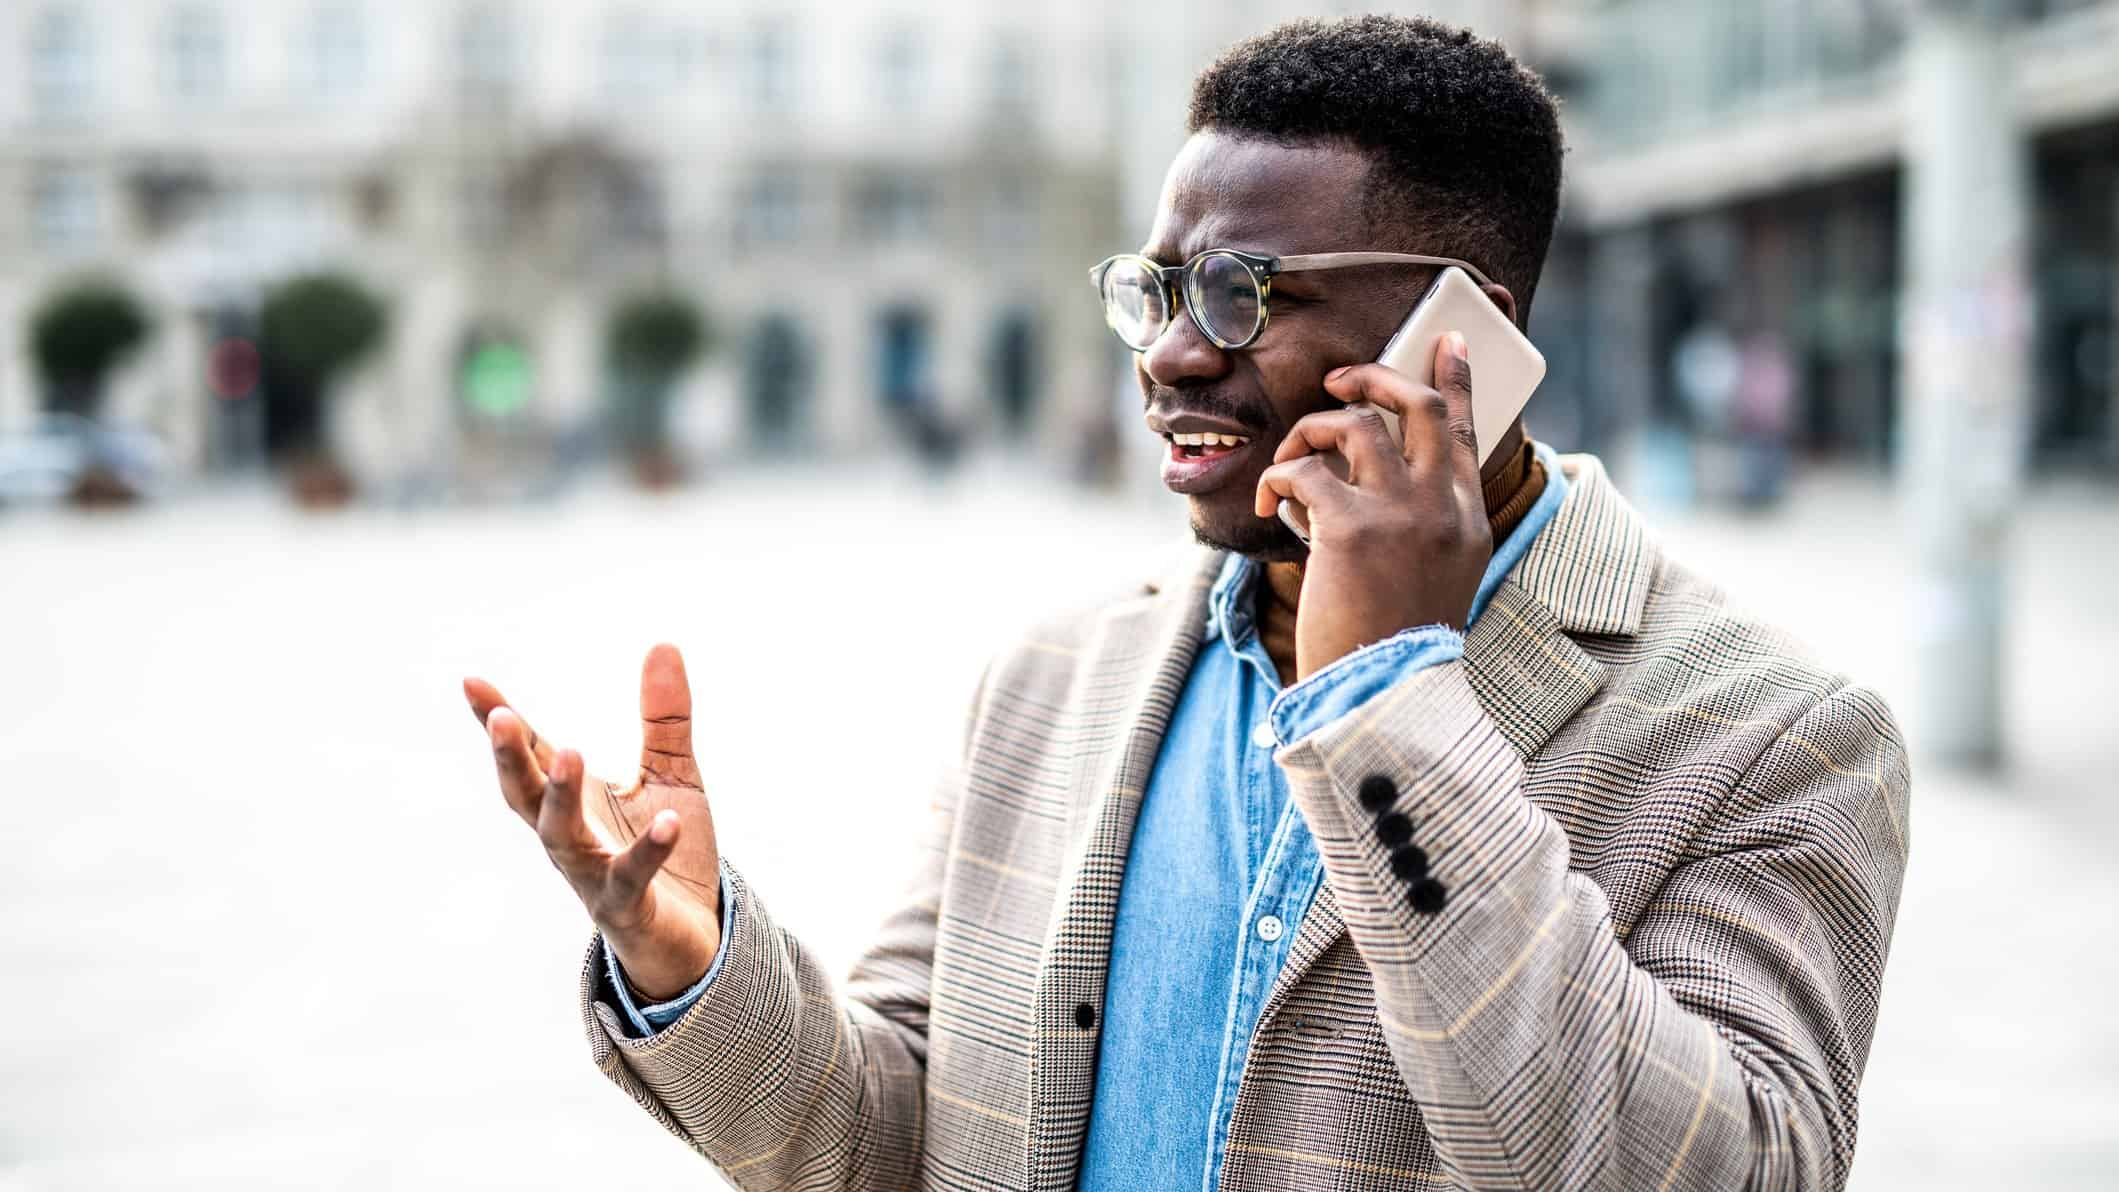 A man talking on his mobile phone looks uncertain